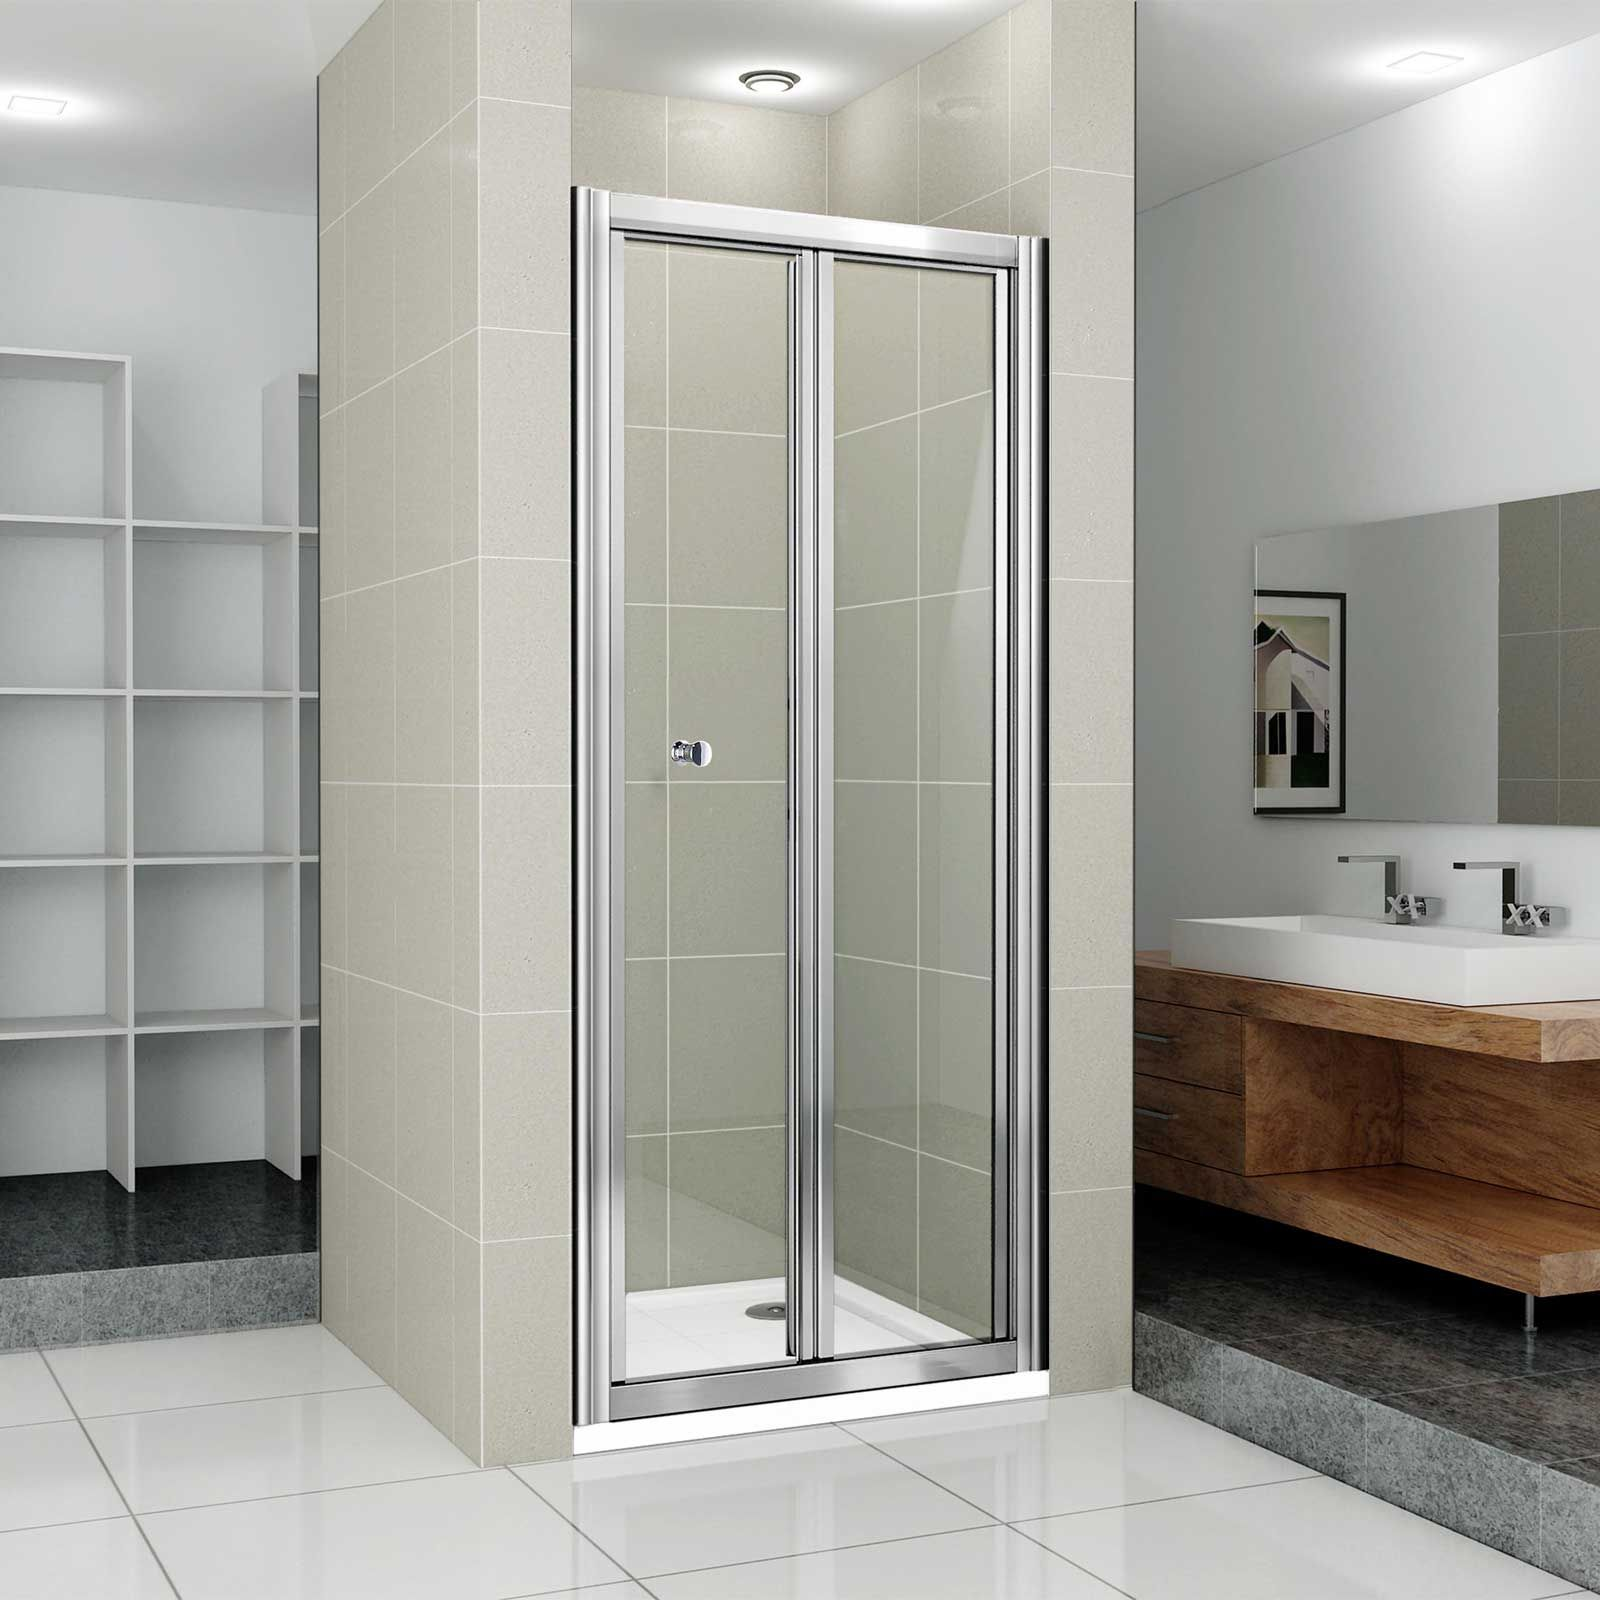 Bi Fold Shower Door Door Stair Design Bathroom Design Small Modern Bifold Shower Door Shower Doors